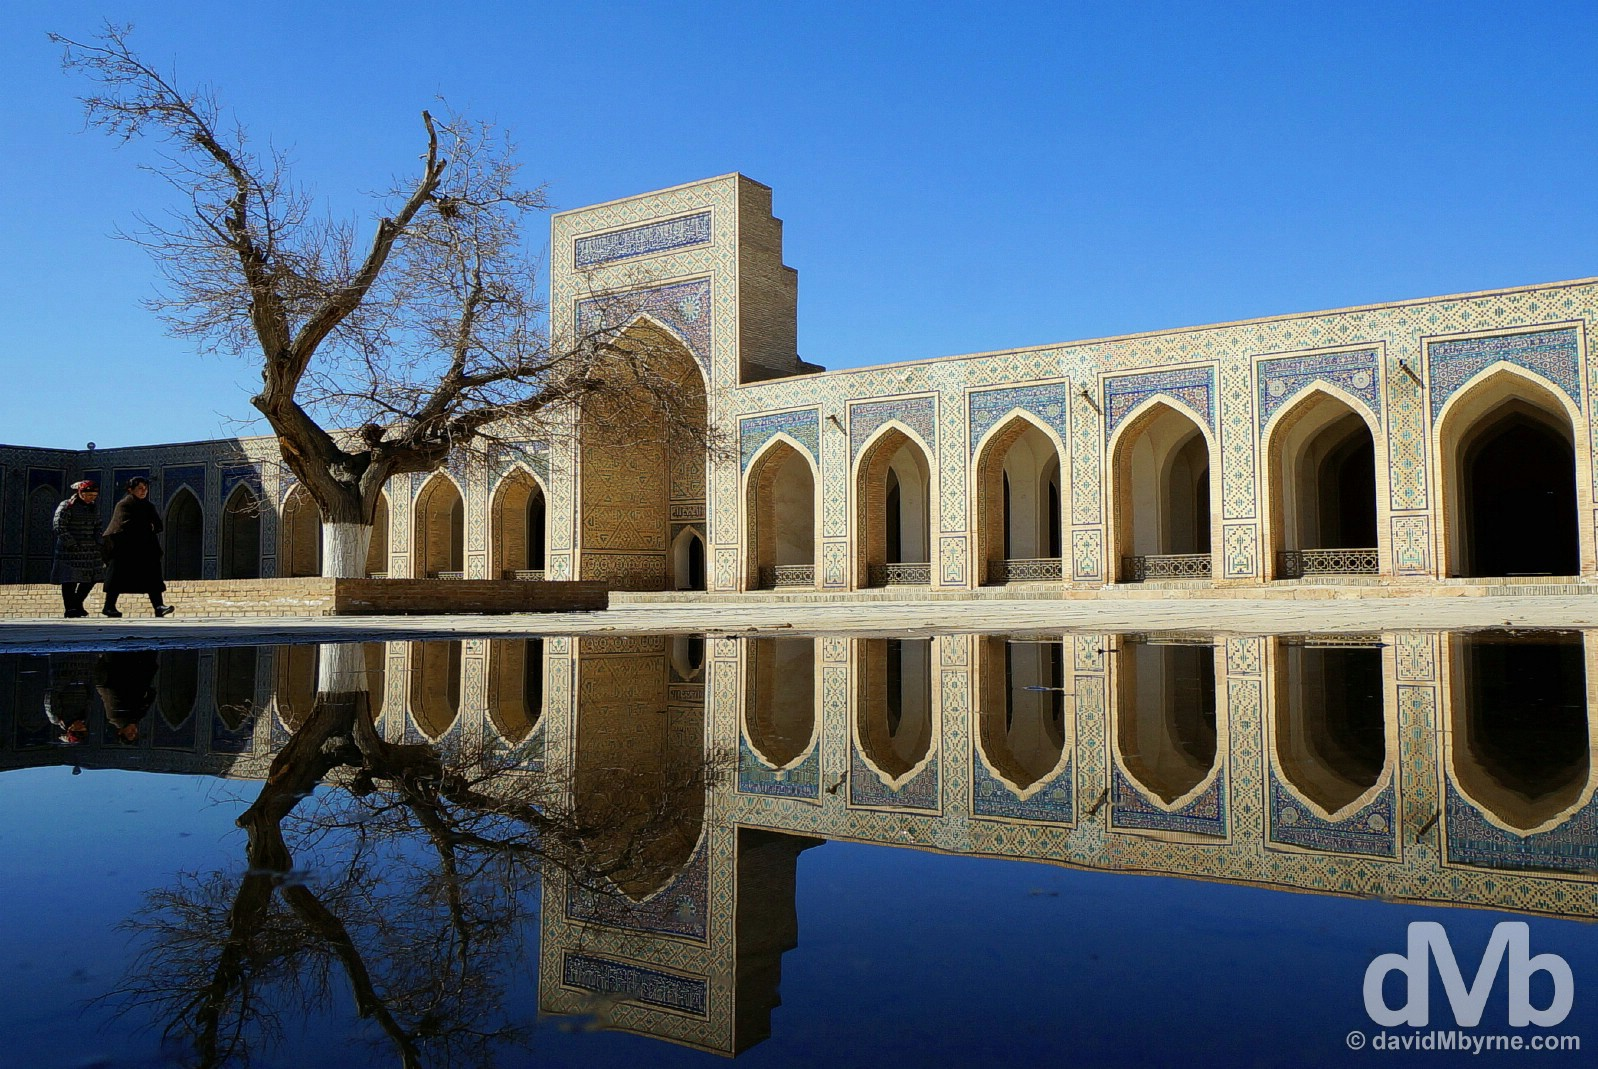 Reflections in the main courtyard of the Kalon Mosque in Bukhara, Uzbekistan. March 12, 2015.